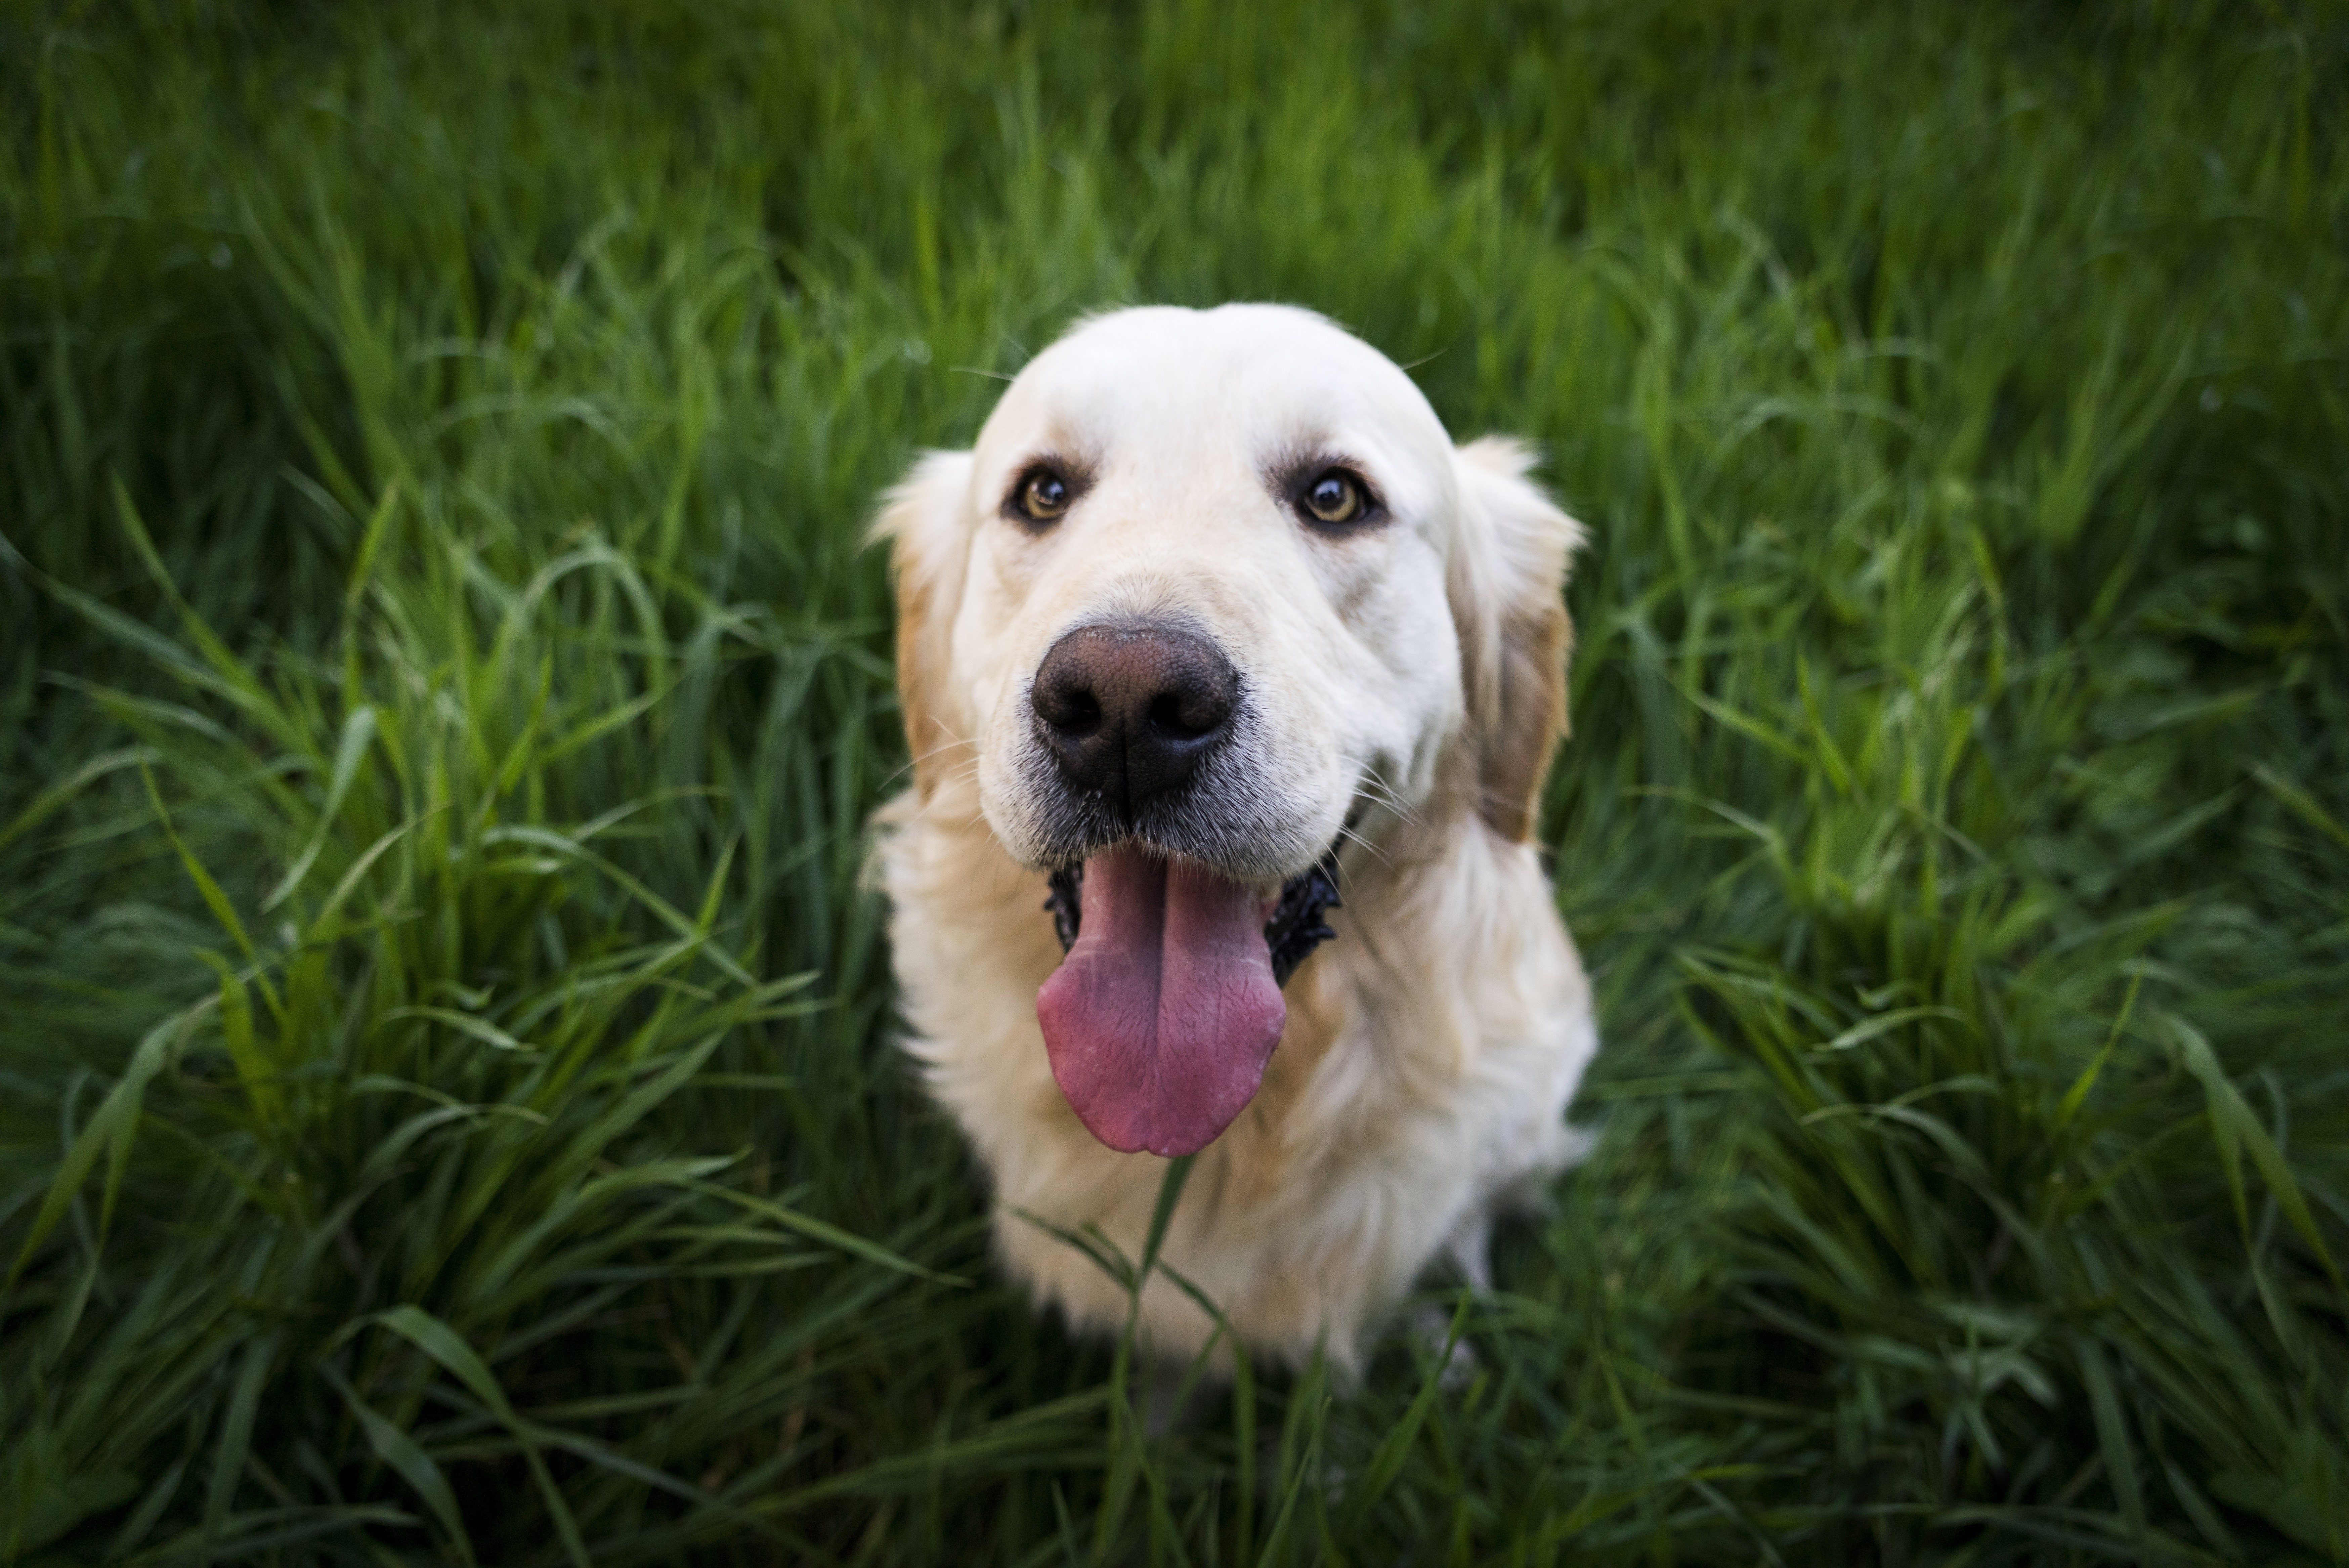 1920x1080 Golden Labrador Retriever 5k Laptop Full Hd 1080p Hd 4k Wallpapers Images Backgrounds Photos And Pictures